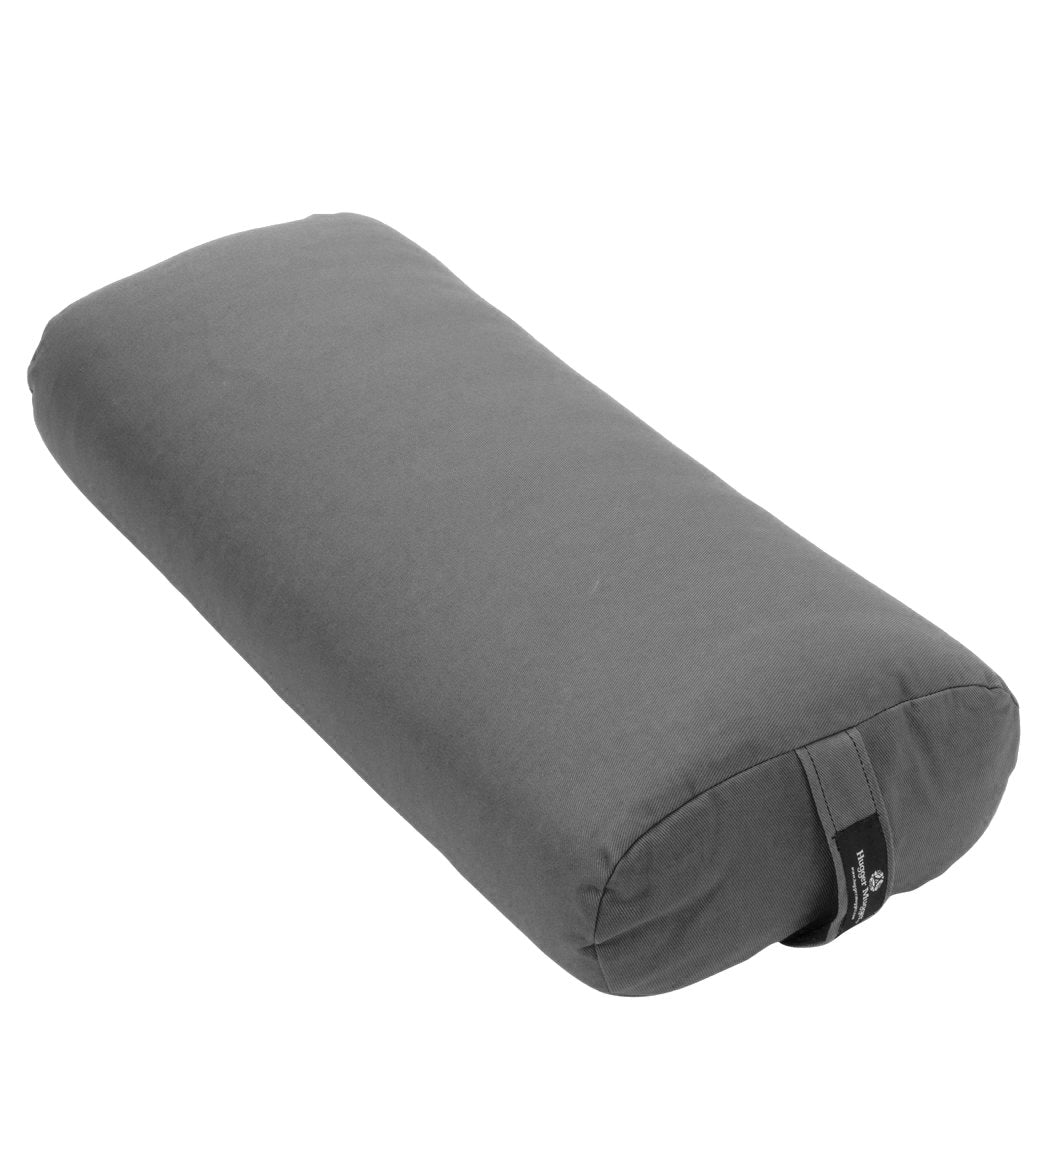 Make your yoga practice more enjoyable with the Hugger Mugger(TM) Standard Yoga Bolster. Ideal for restorative yoga, but great for all types. Removable cover with a convenient handle. Oval shape with a flat surface for comfort. Cover composition: 100% Cotton. Stuffing composition: 80% Cotton Felt / 20% Polyurethane Foam. Dimensions: 6\